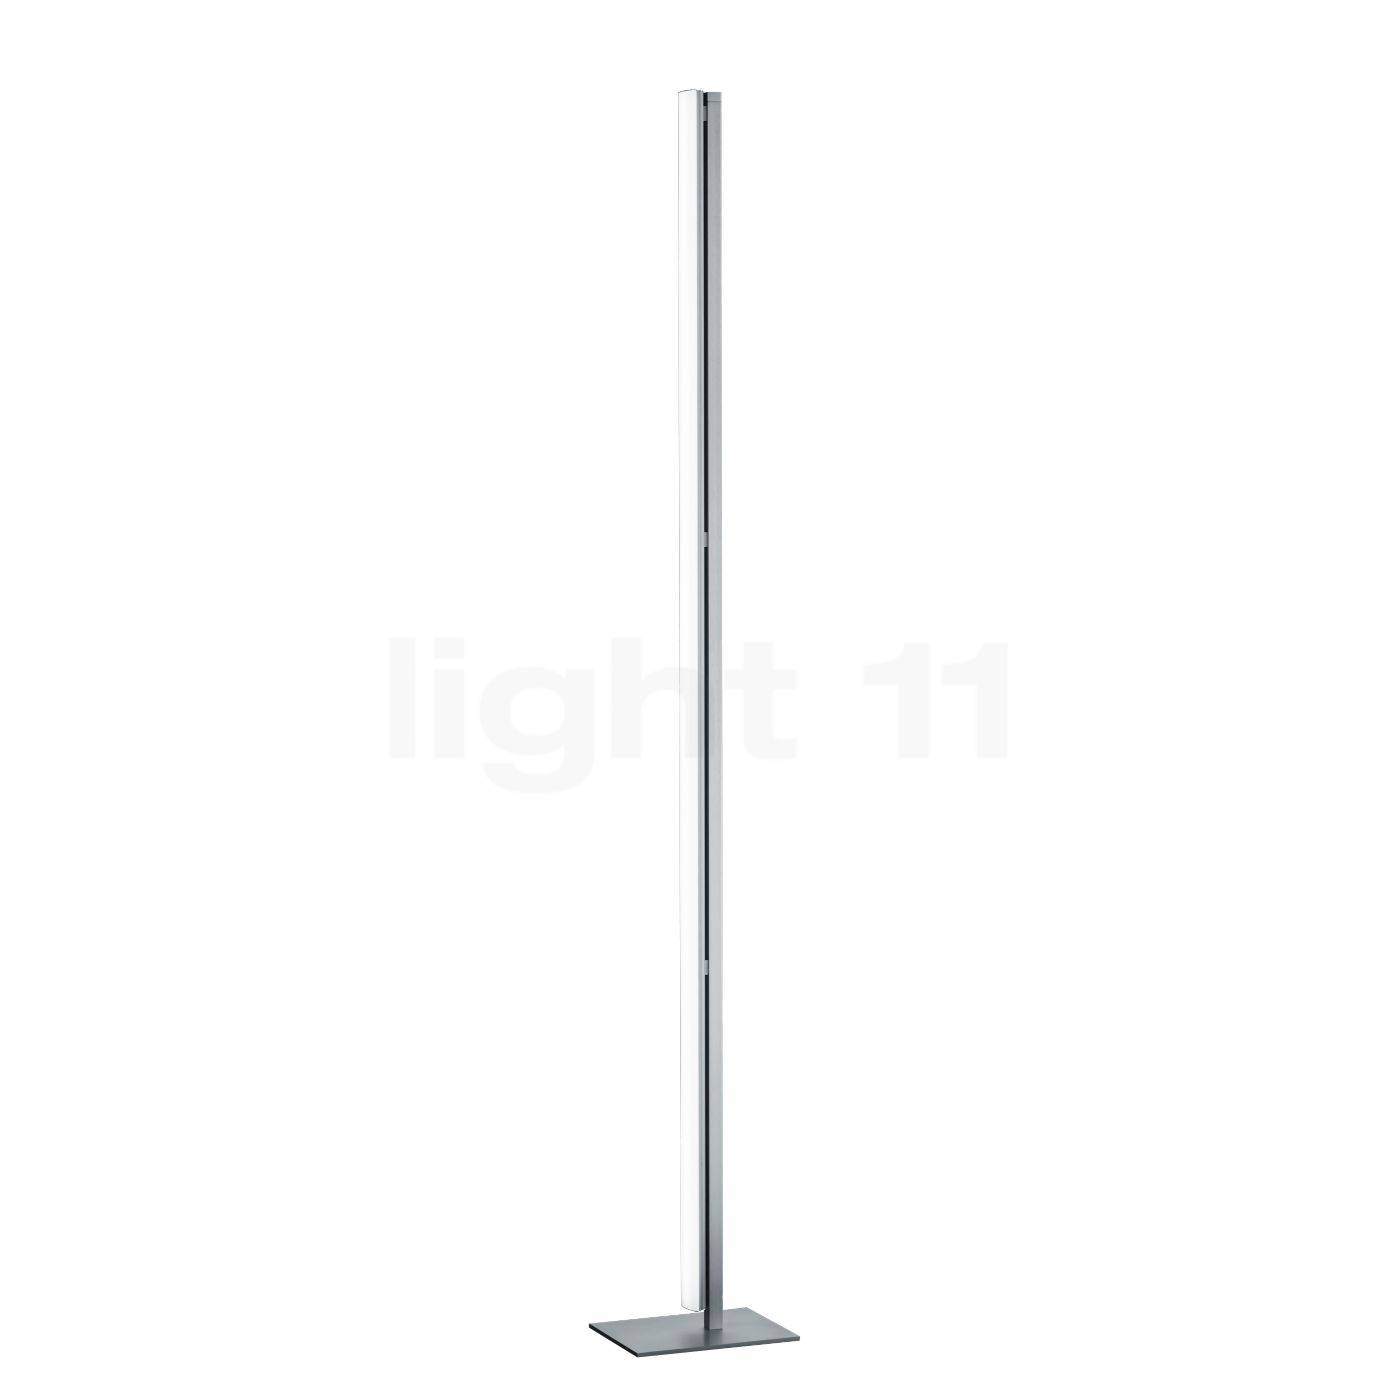 HELESTRA Venta Lampadaire LED, chrome